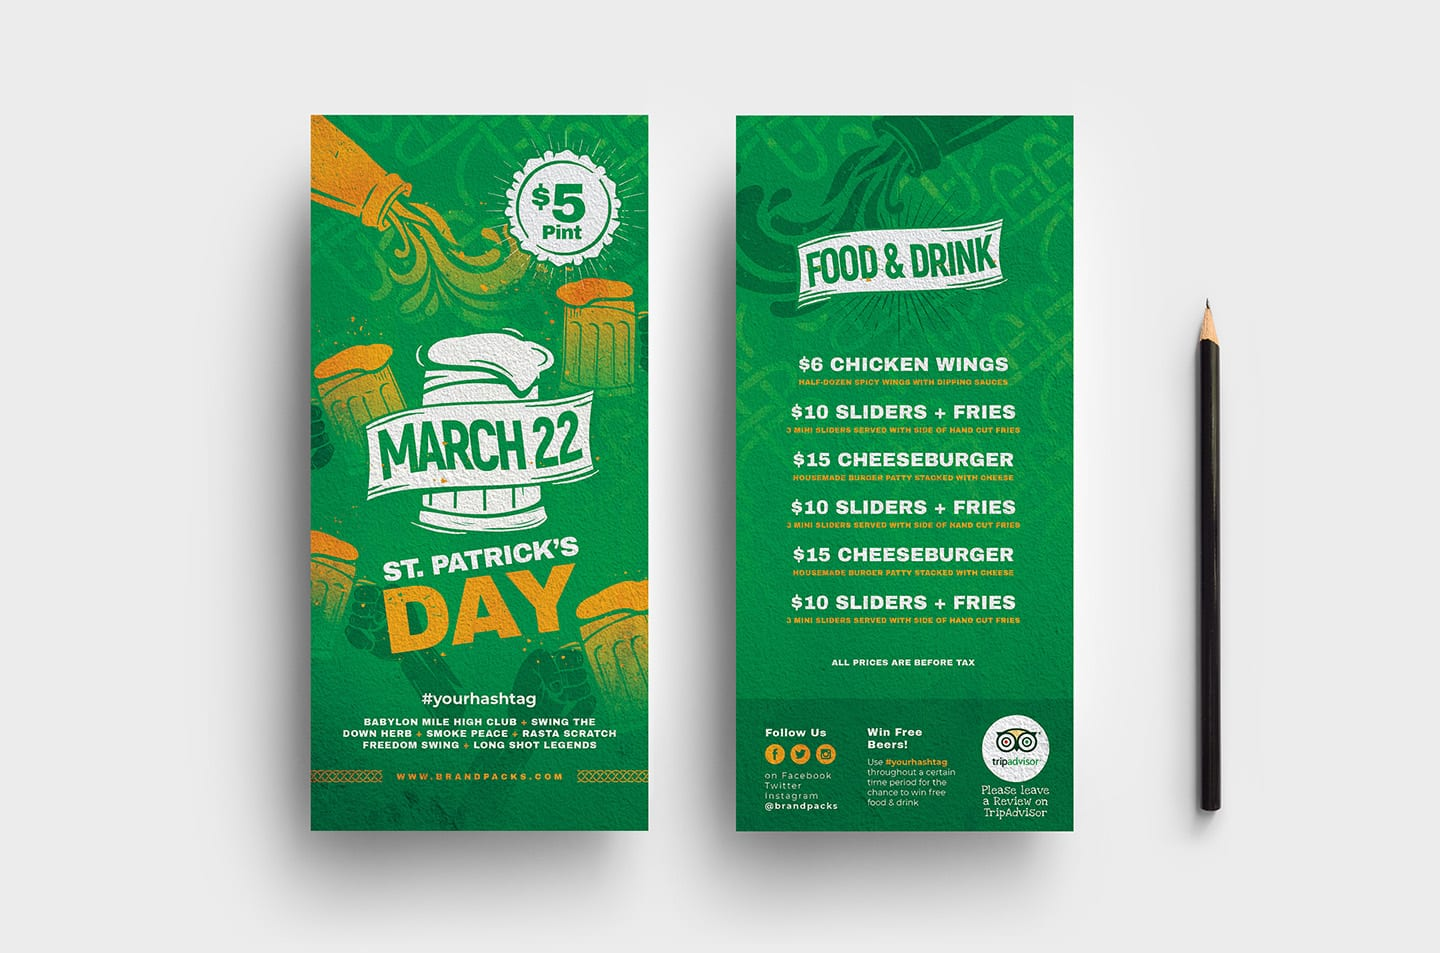 St. Patrick's Day DL Rack Card Templates